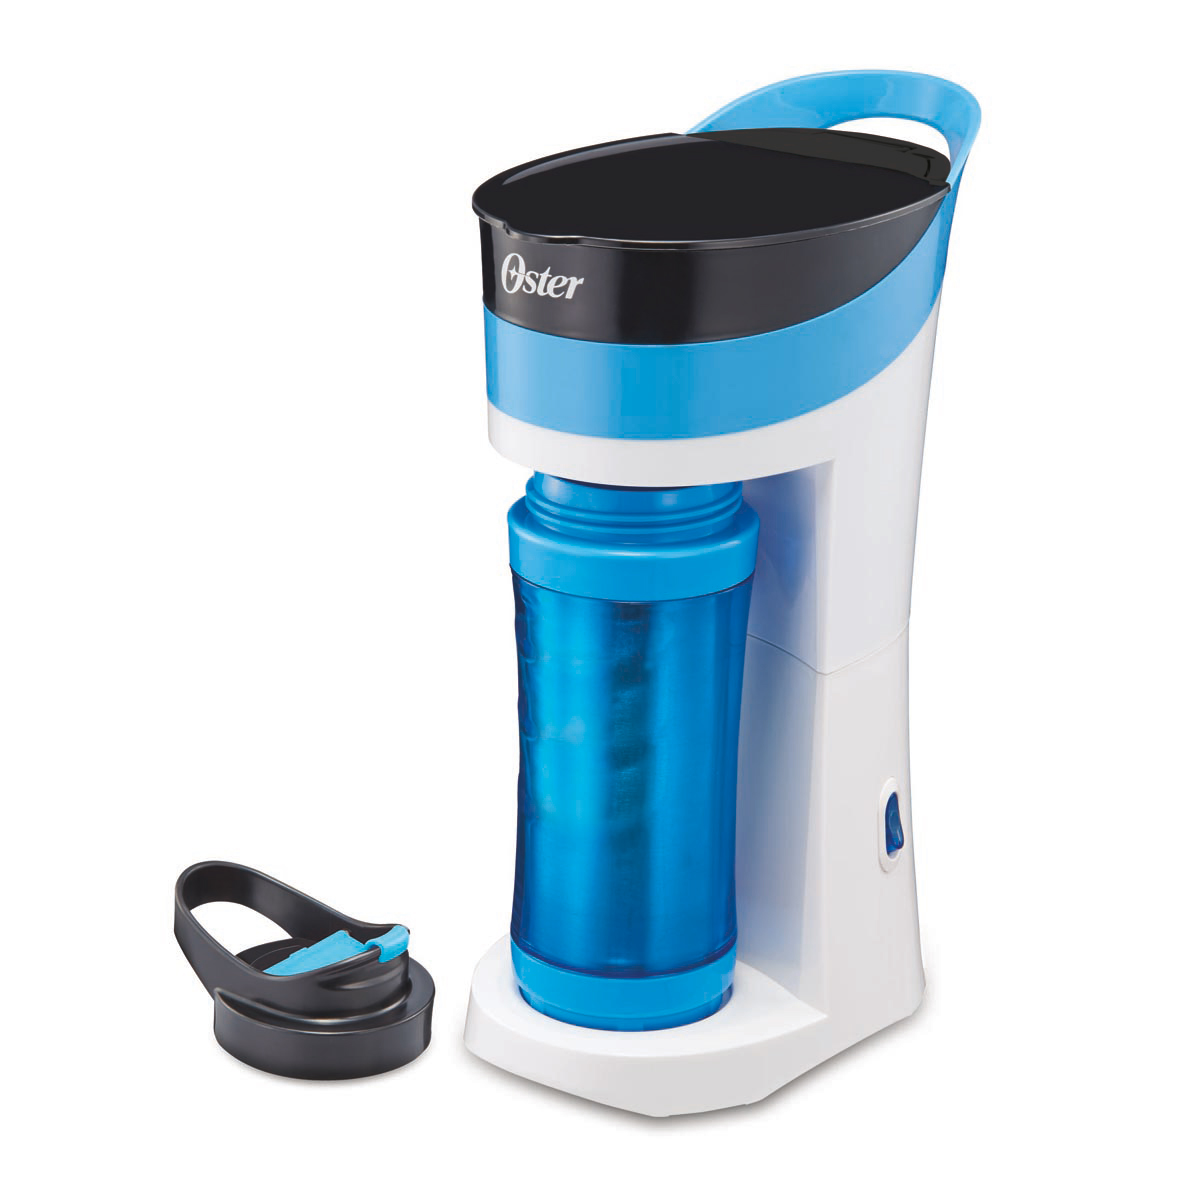 Coffee Maker Brew And K Cup : Oster Pour! Brew! Go! Single Cup Coffee Maker, Blue BVSTMYBB-31LD Oster Canada